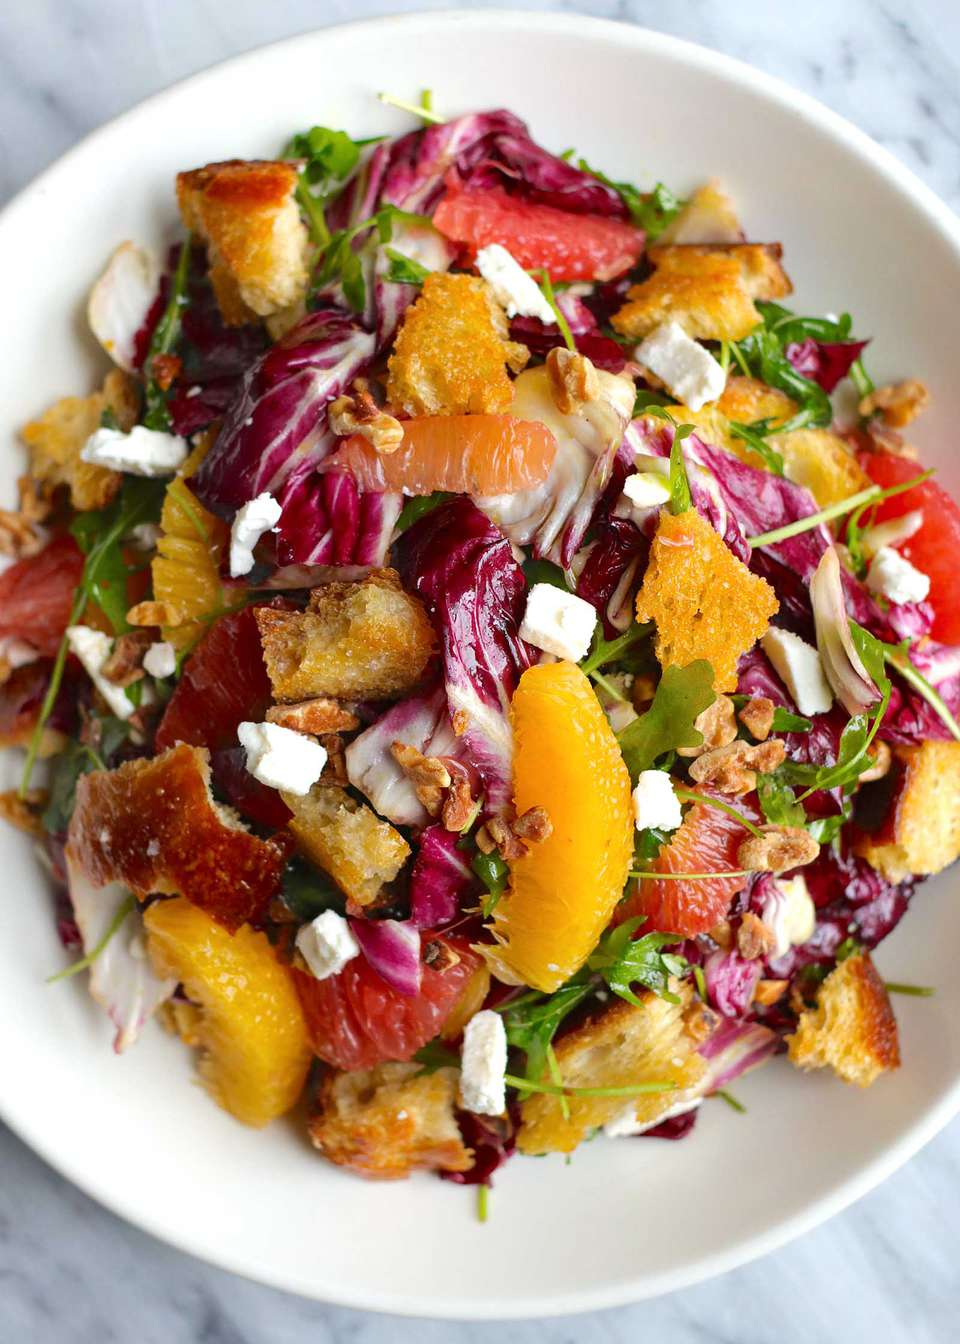 Citrus Salad on a white plate. Supremed orange and grapefruit, radicchio, croutons and feta cheese crumbles are visible.